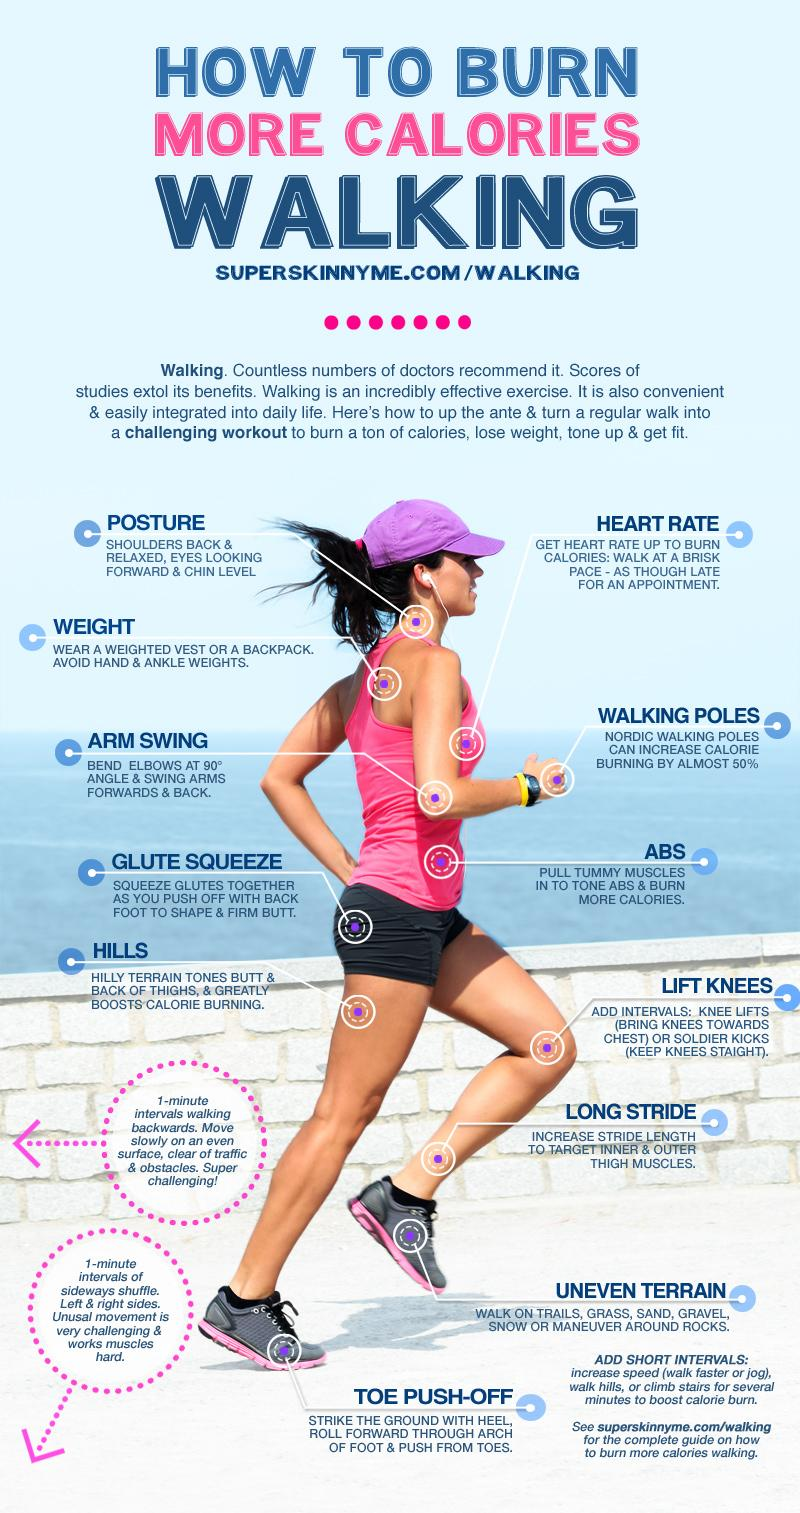 SuperSkinnyMe walking infographic